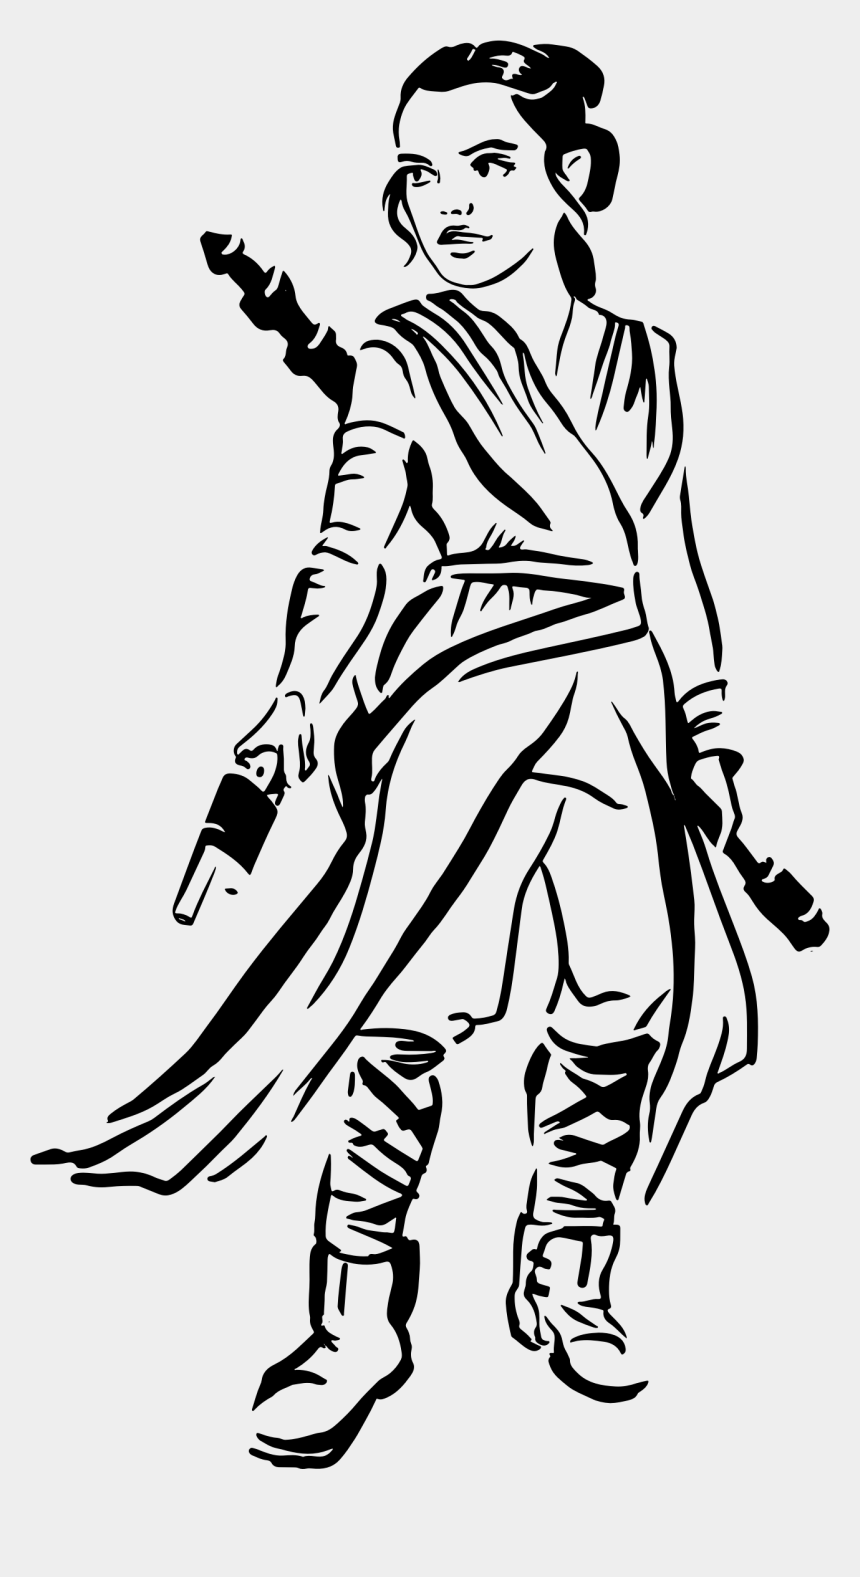 Woman Warrior Clipart Black And White Rey Star Wars Svg Cliparts Cartoons Jing Fm